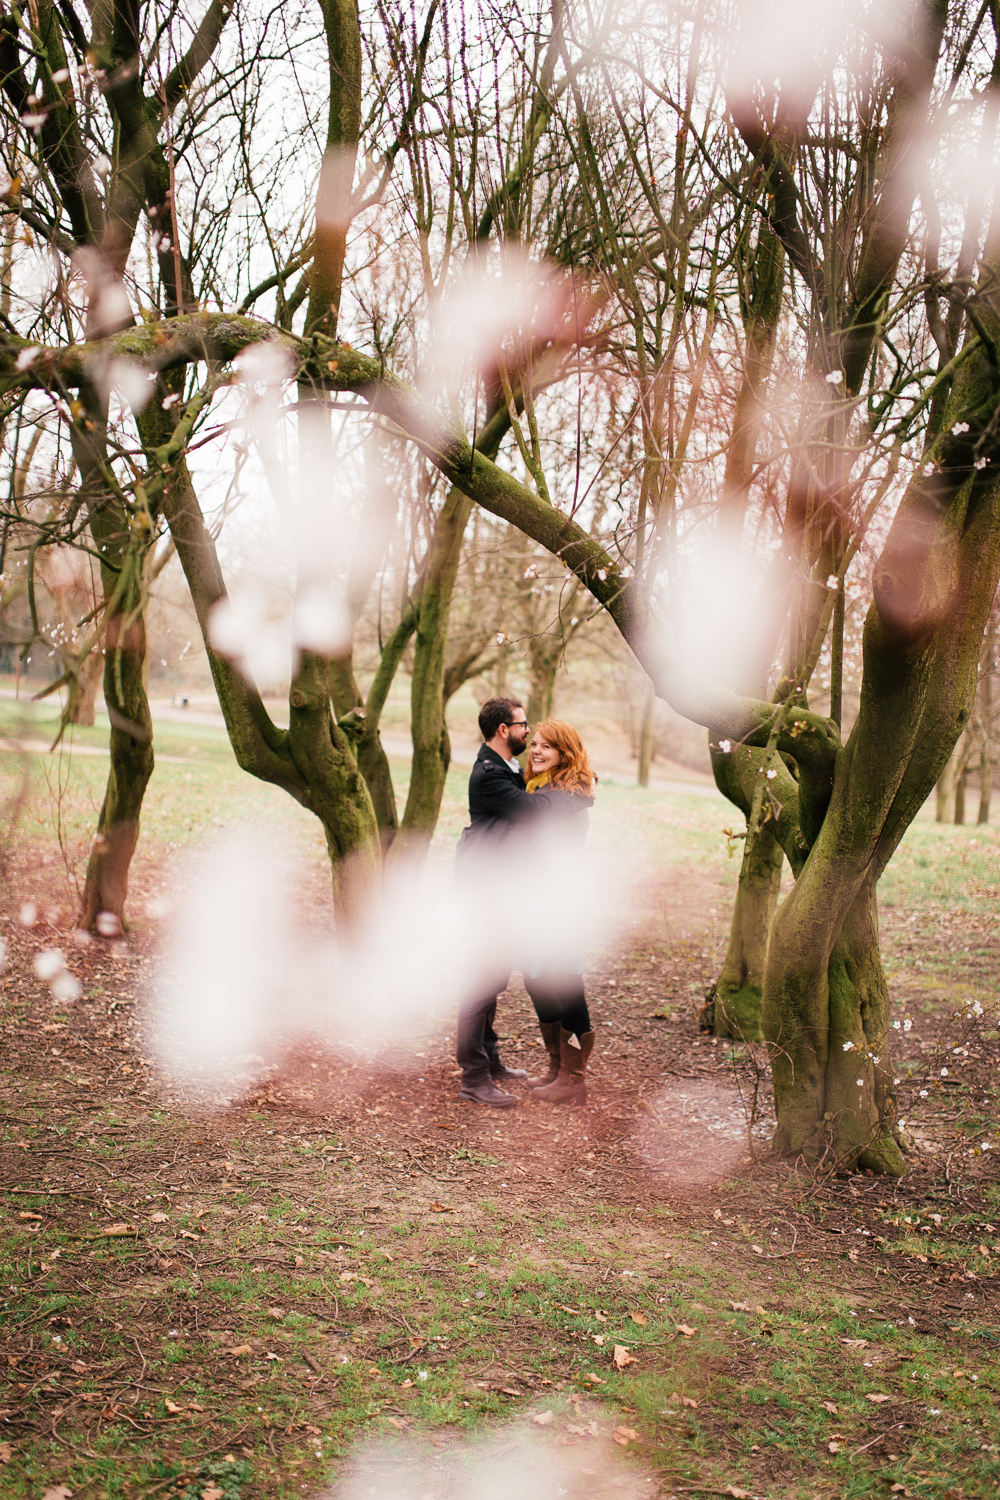 Alexandra Palace Engagement Shoot Creative Artistic Photography London (36 of 42).jpg